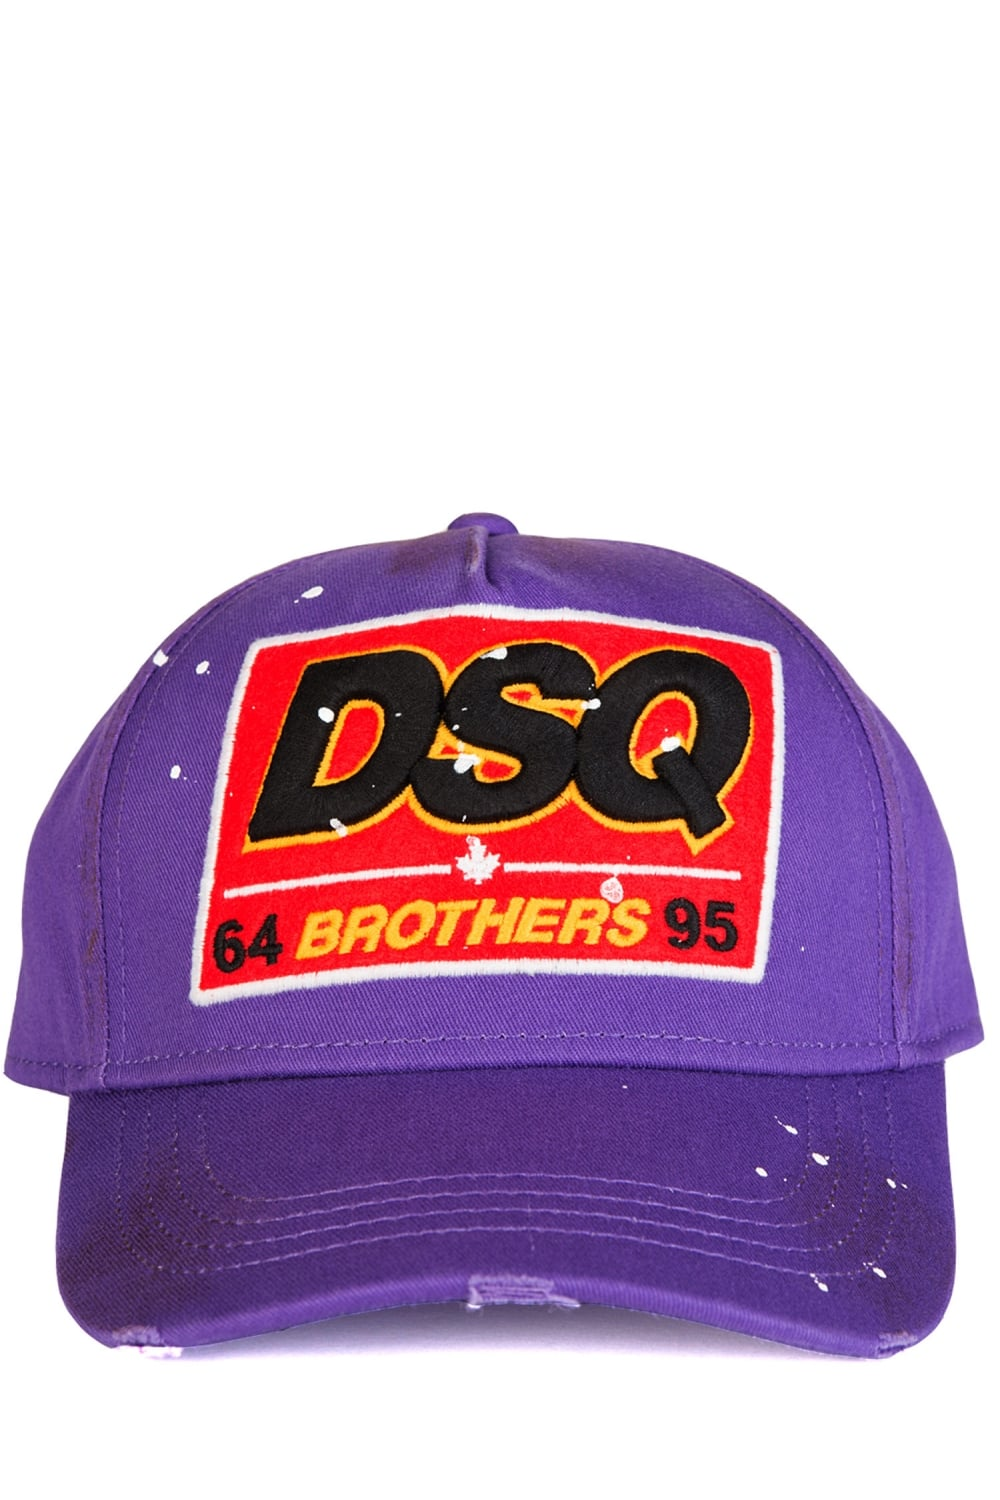 Dsquared Brothers Baseball Cap Purple 8ddce5e733d